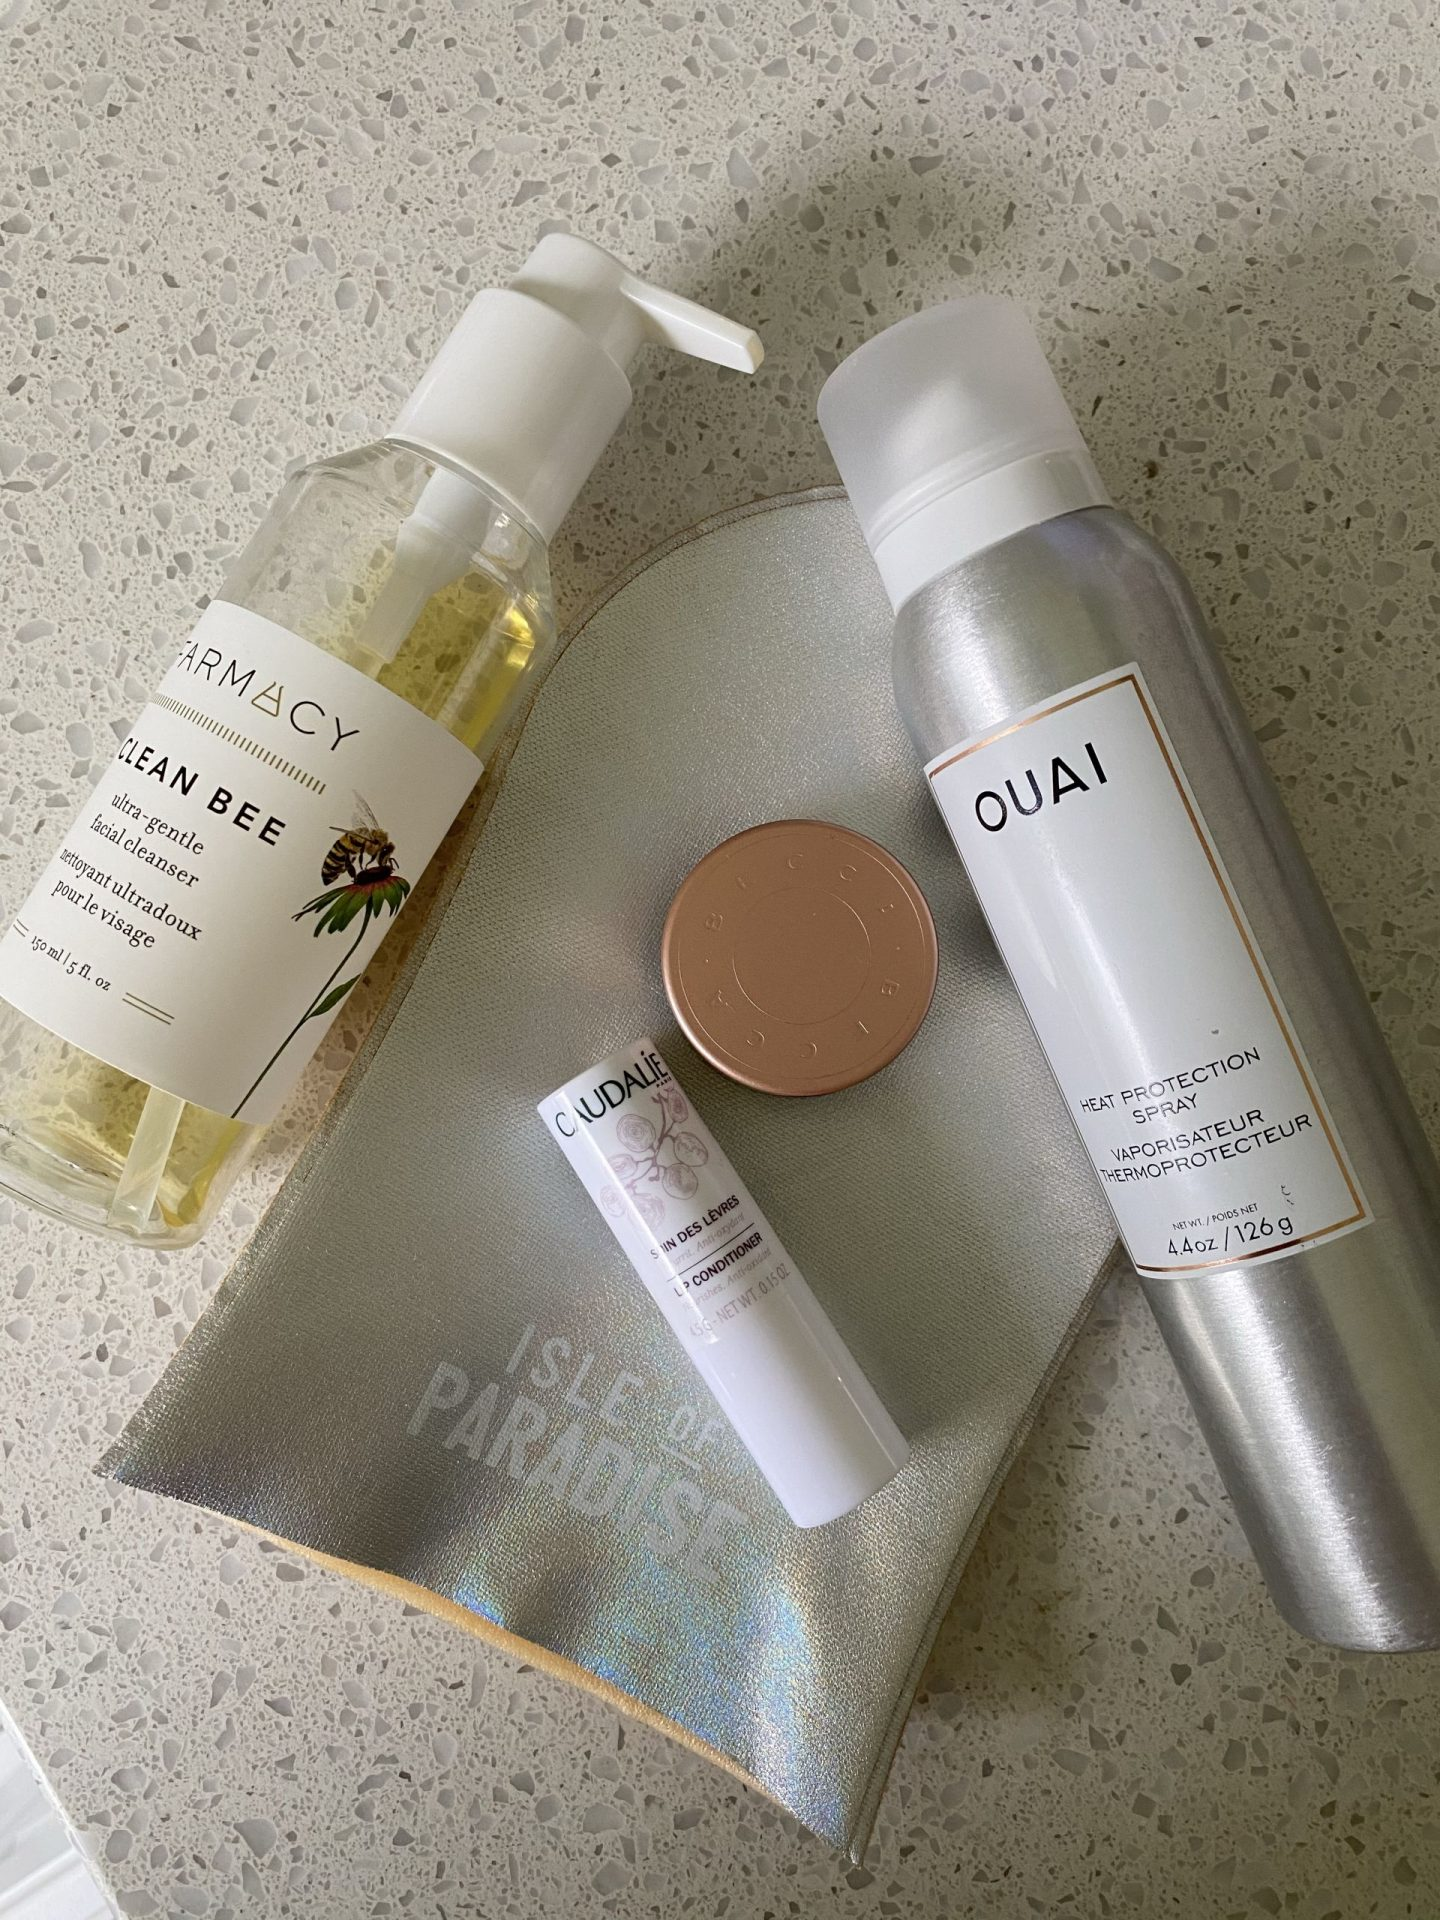 NC blogger Rebecca Lately is sharing her five favorites from Sephora. Check out her recommendations for skin and body care!